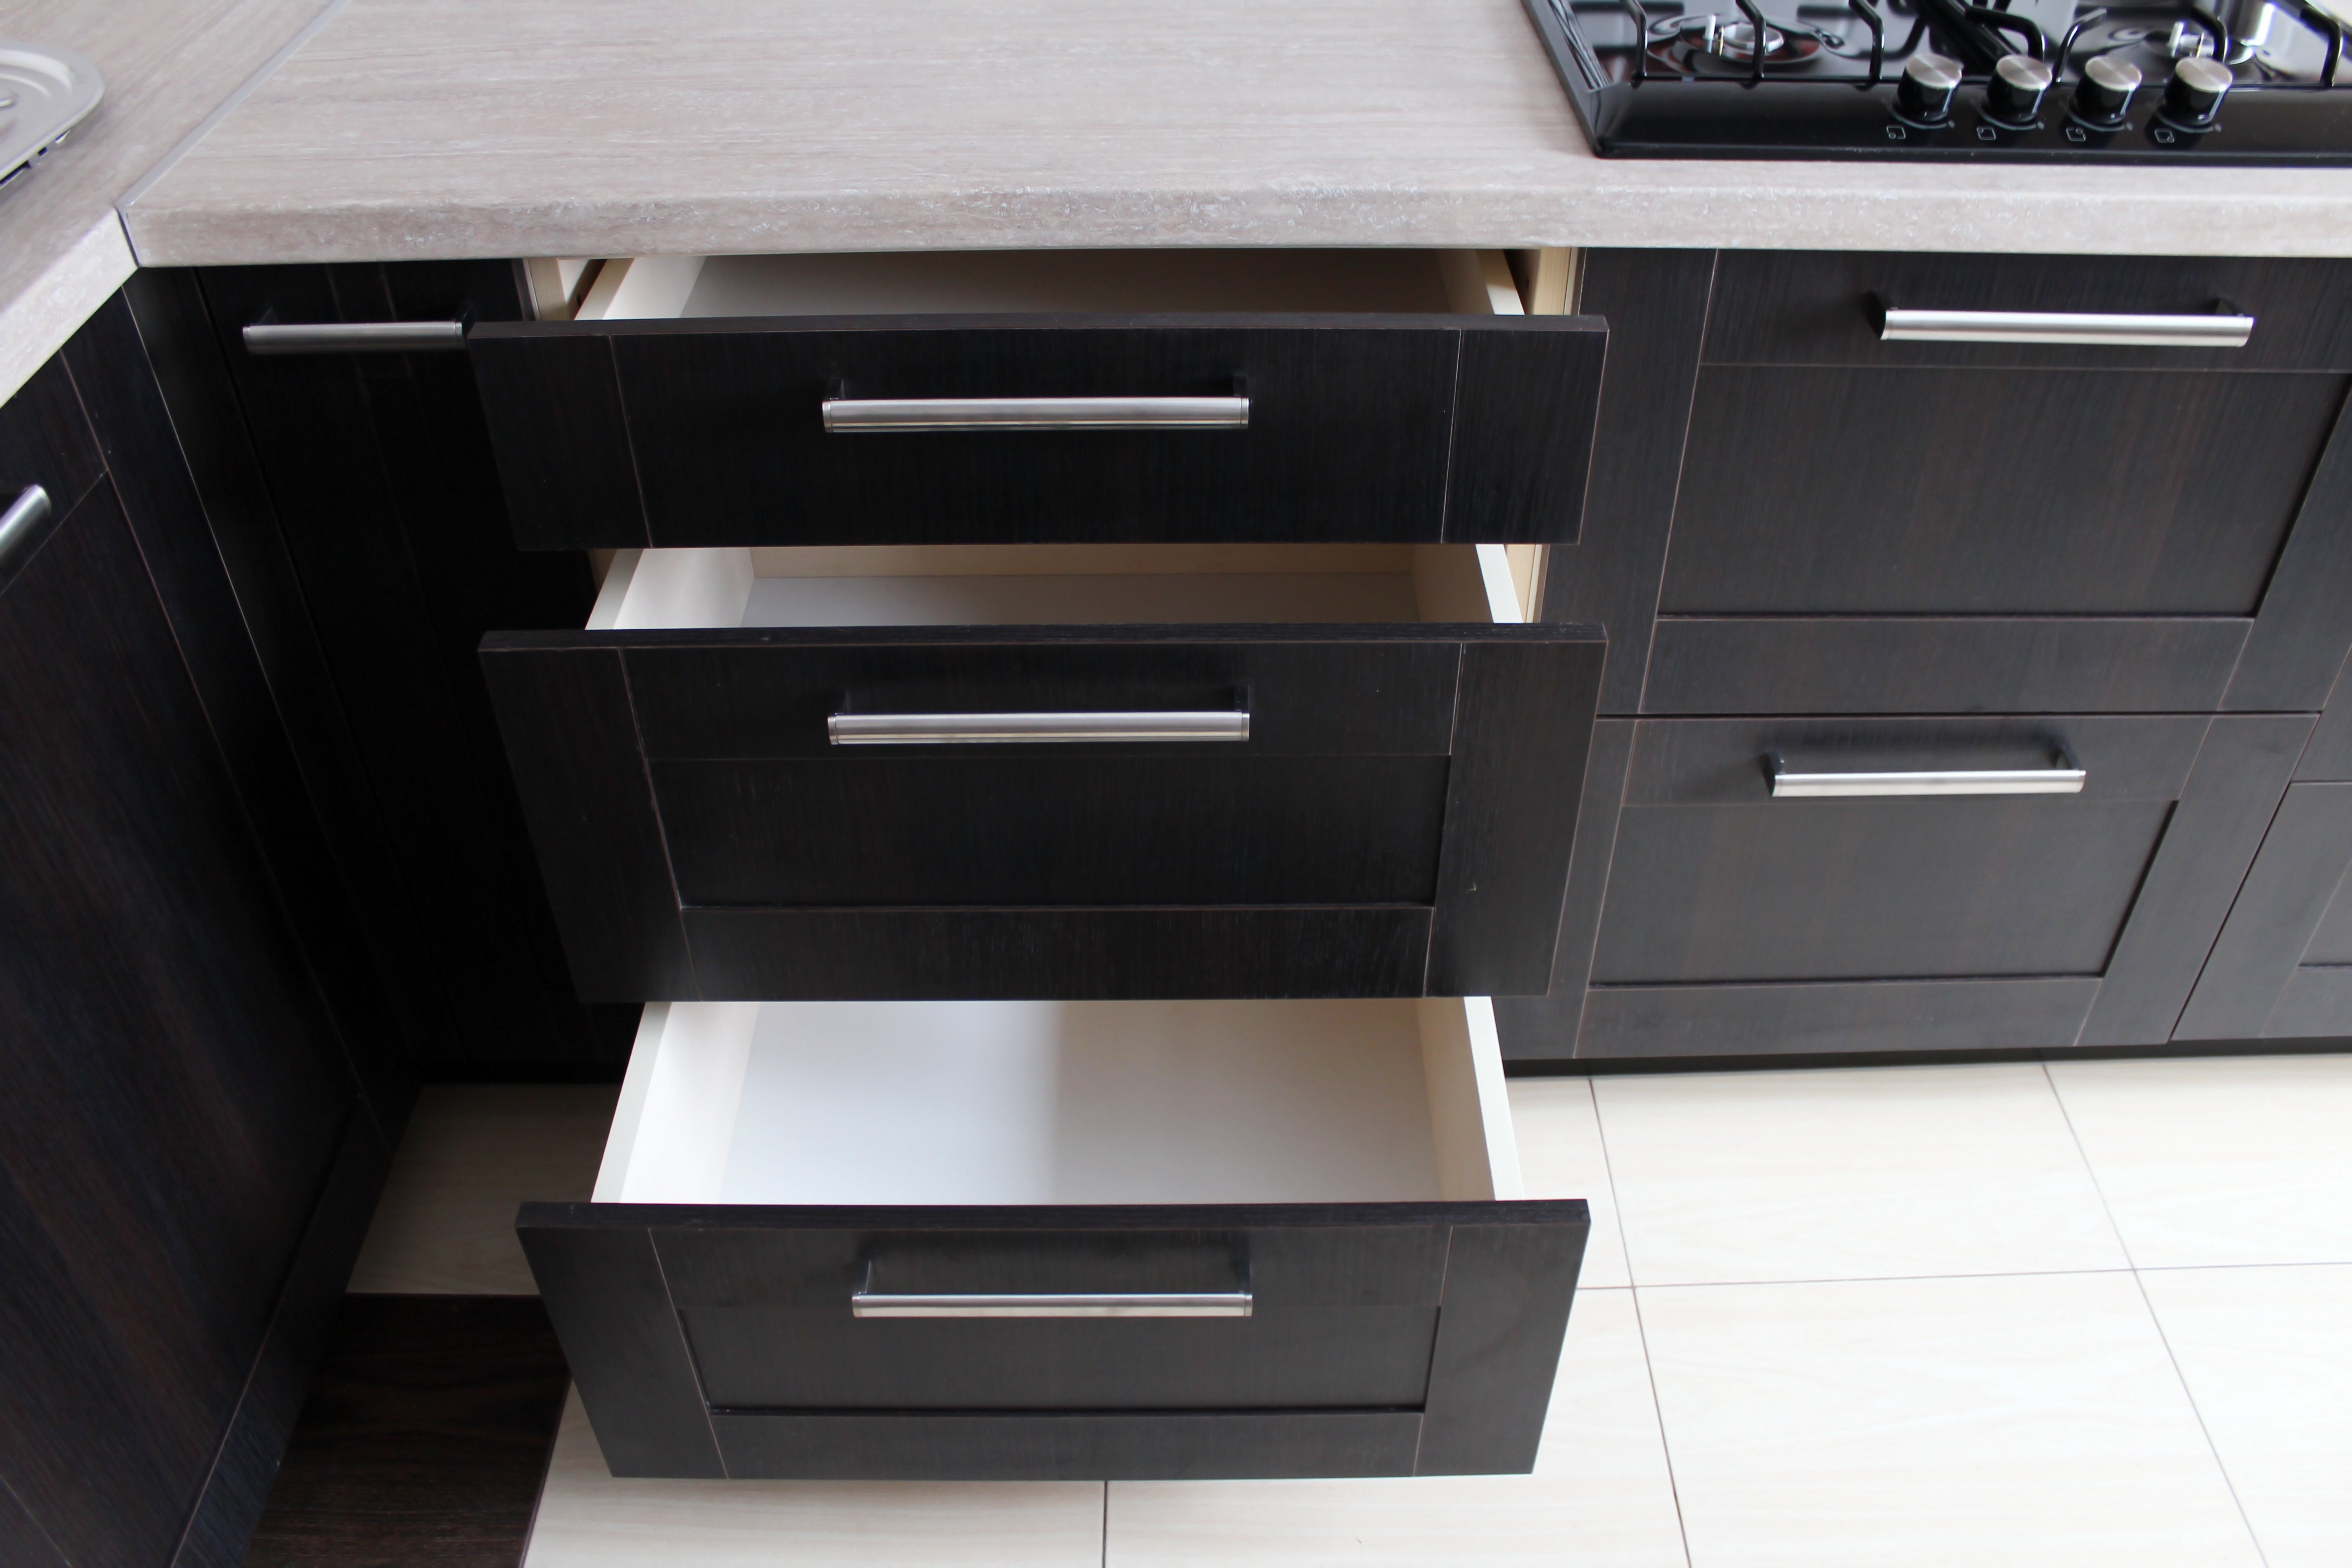 Black kitchen cabinets with open drawer